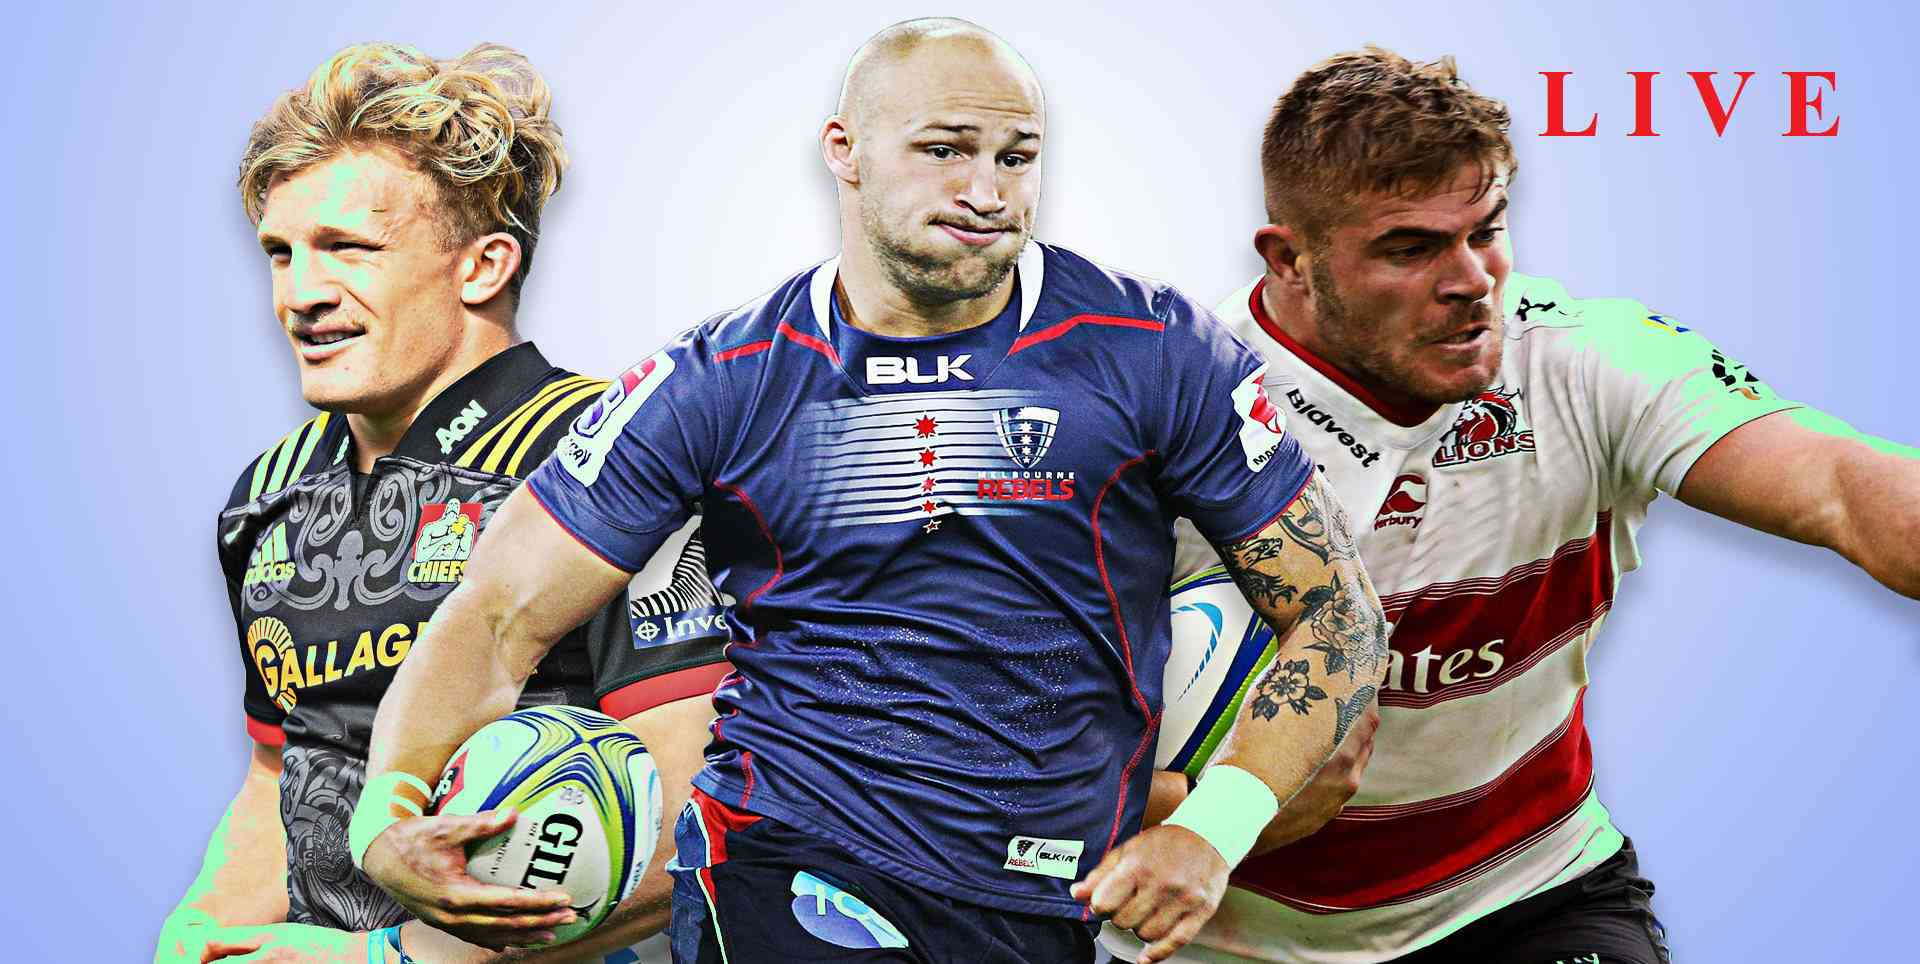 cardiff-blues-vs-scarlets-rugby-live-stream